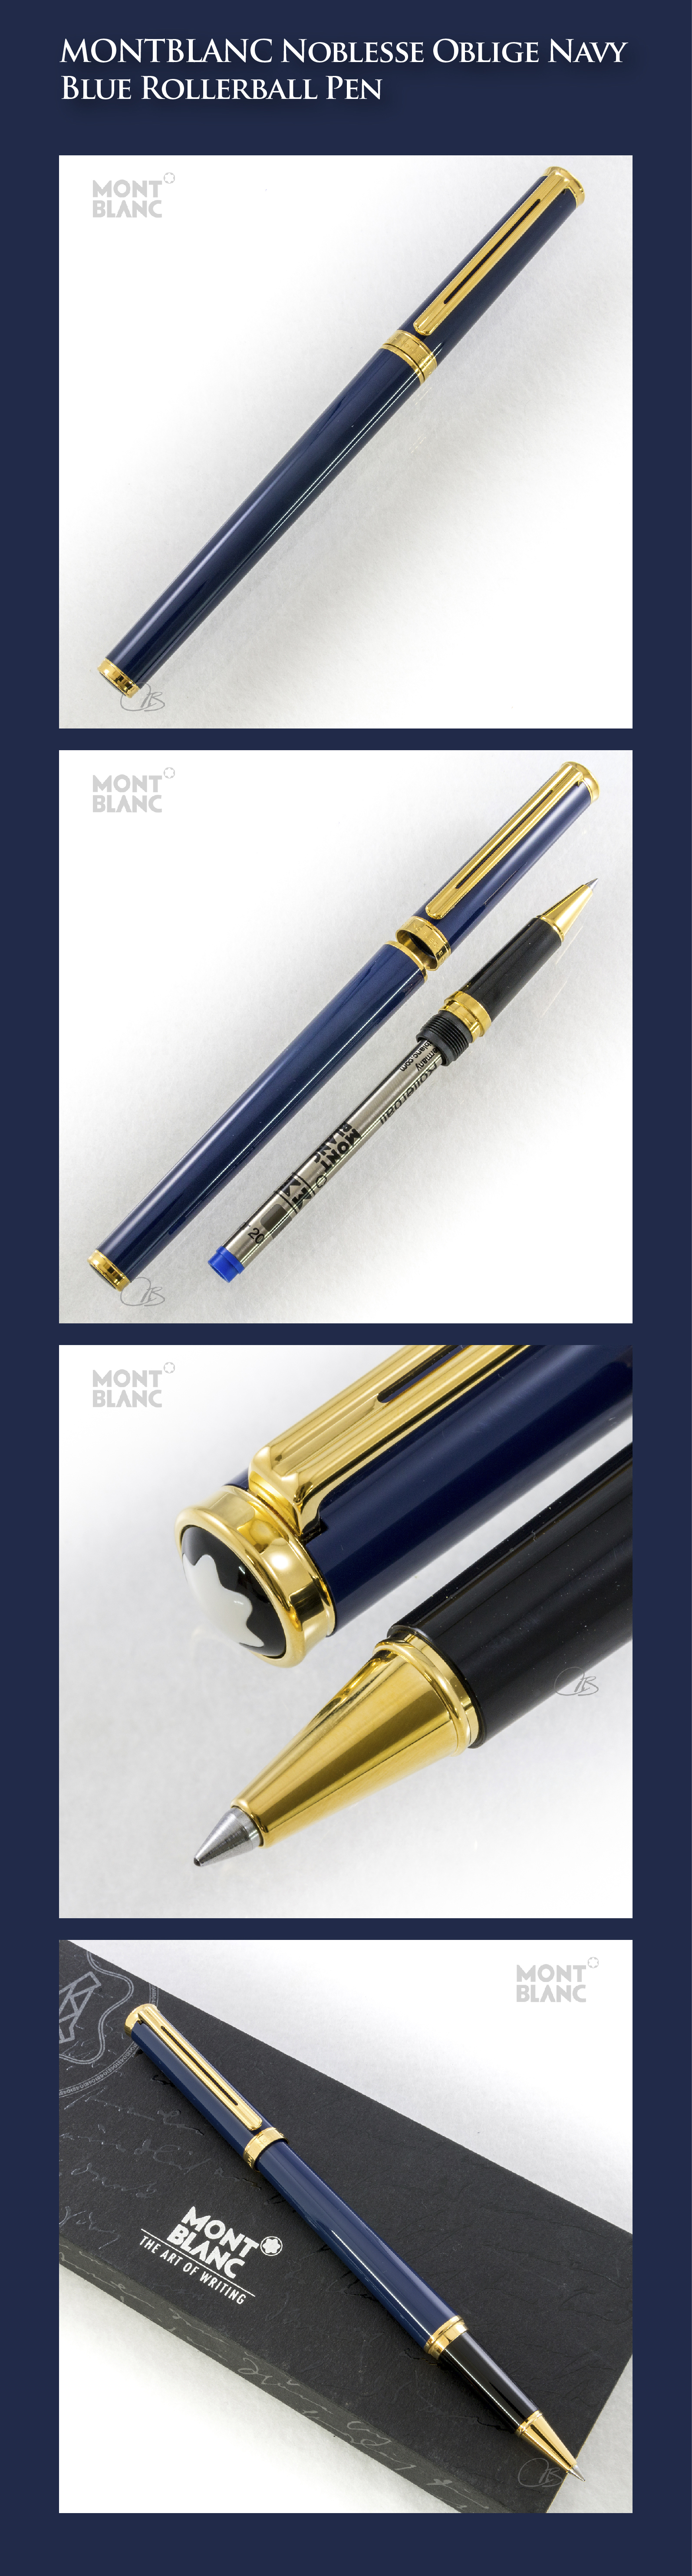 a811eb9eb8f MONTBLANC Noblesse Oblige Navy Blue Rollerball Pen (lacquer-coated metal  body